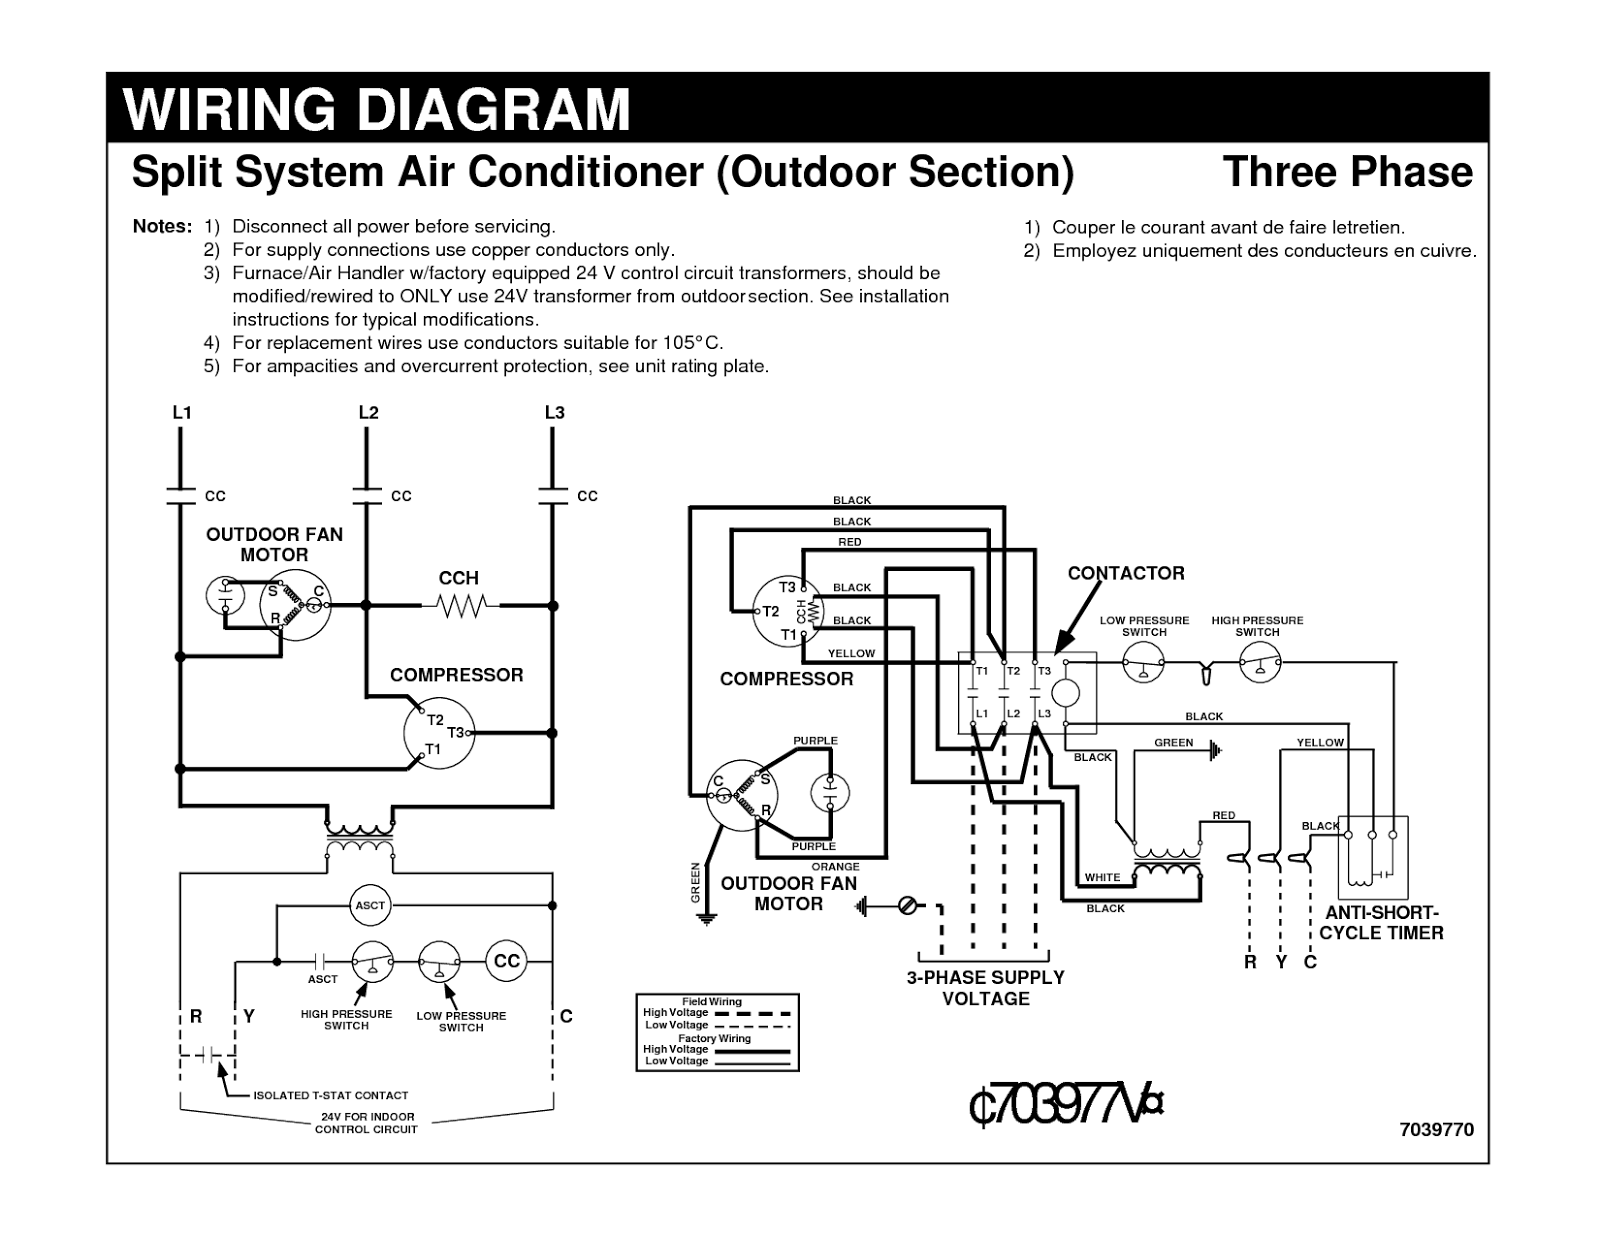 House Wiring Diagram Ex Les Schematics New Technology Online Mobile Home Circuit Ac Unit Diagrams